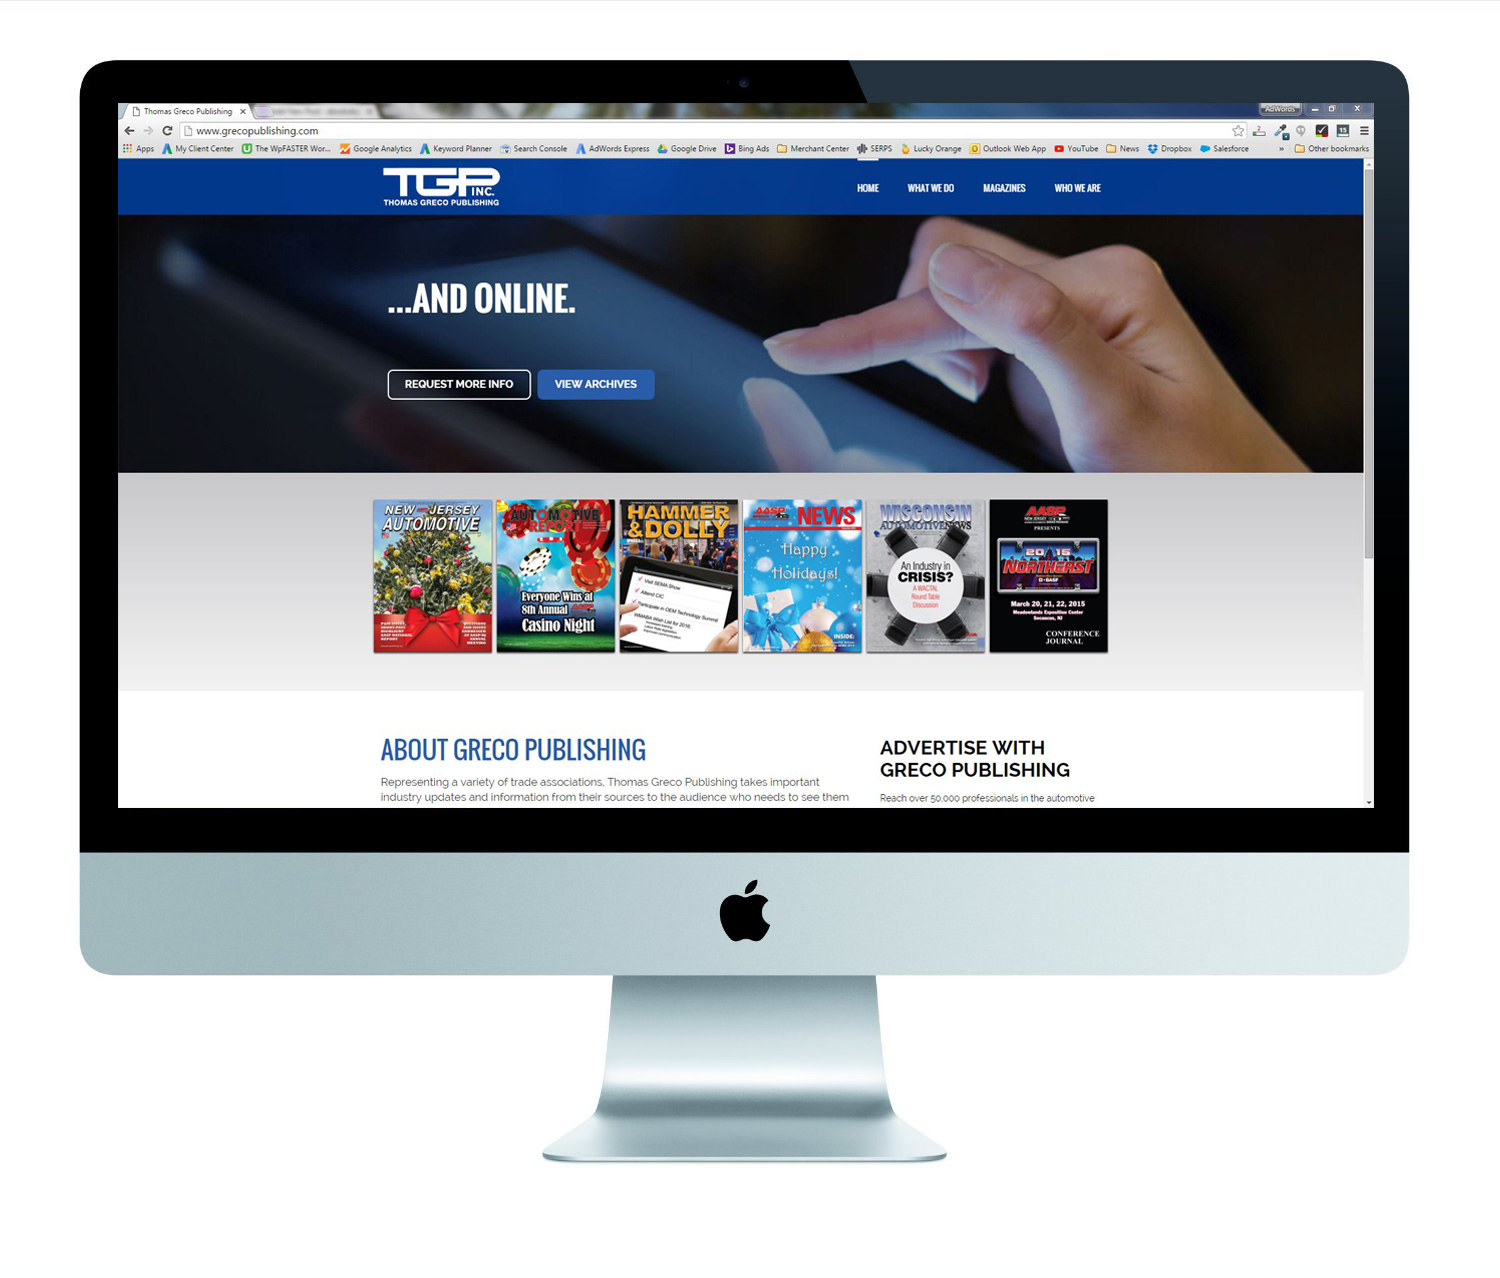 Absolute Auto Sales >> Case Studies Archives - Absolute Perfection Media